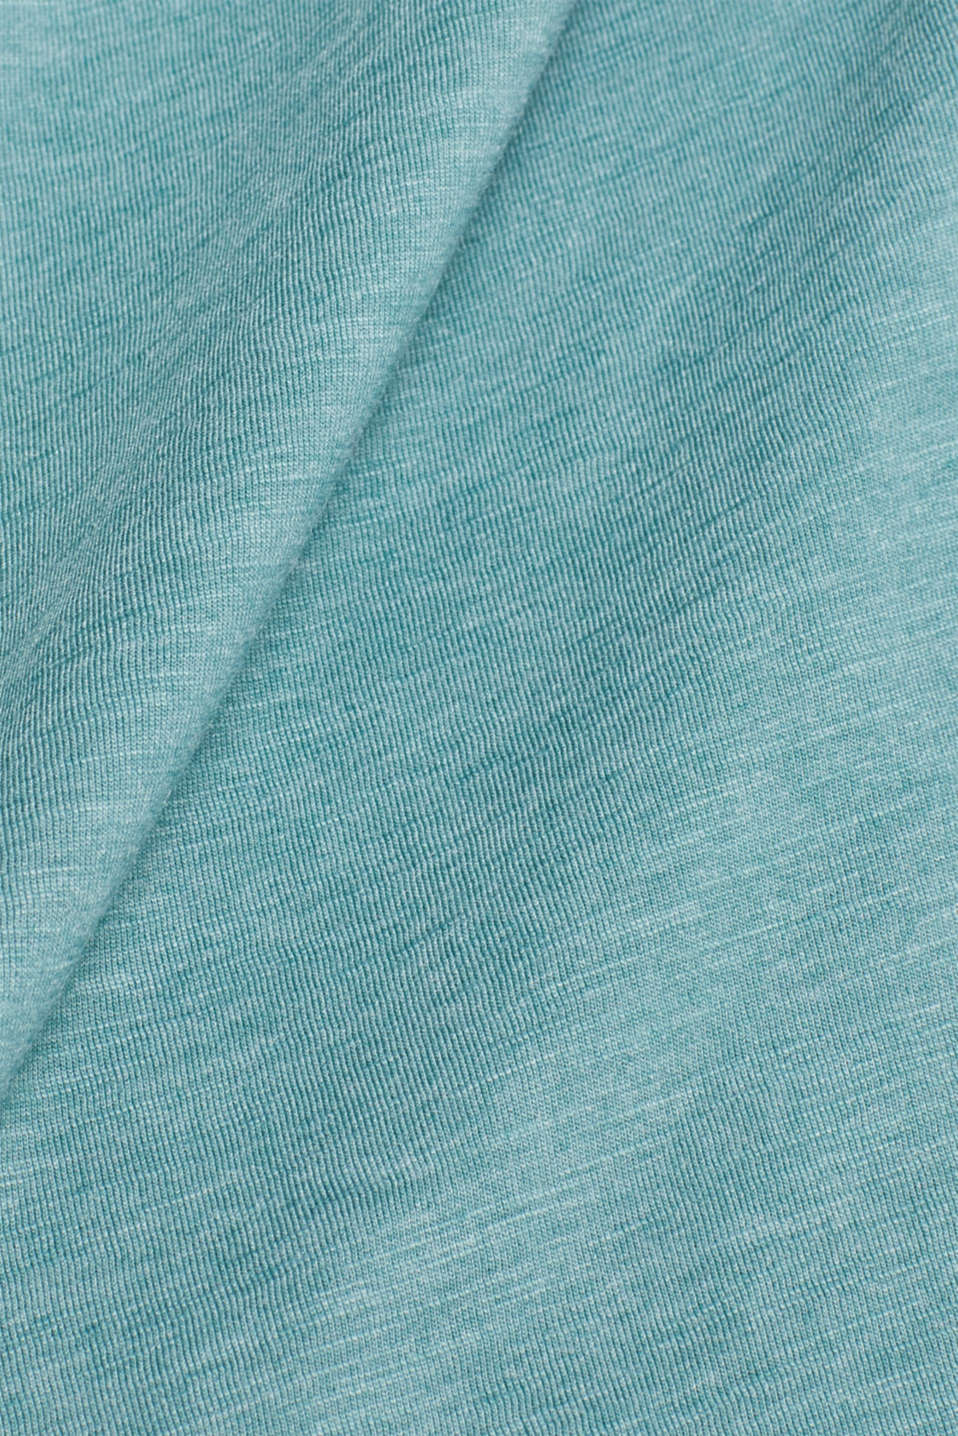 Slub jersey long sleeve top in blended cotton, DUSTY GREEN, detail image number 4